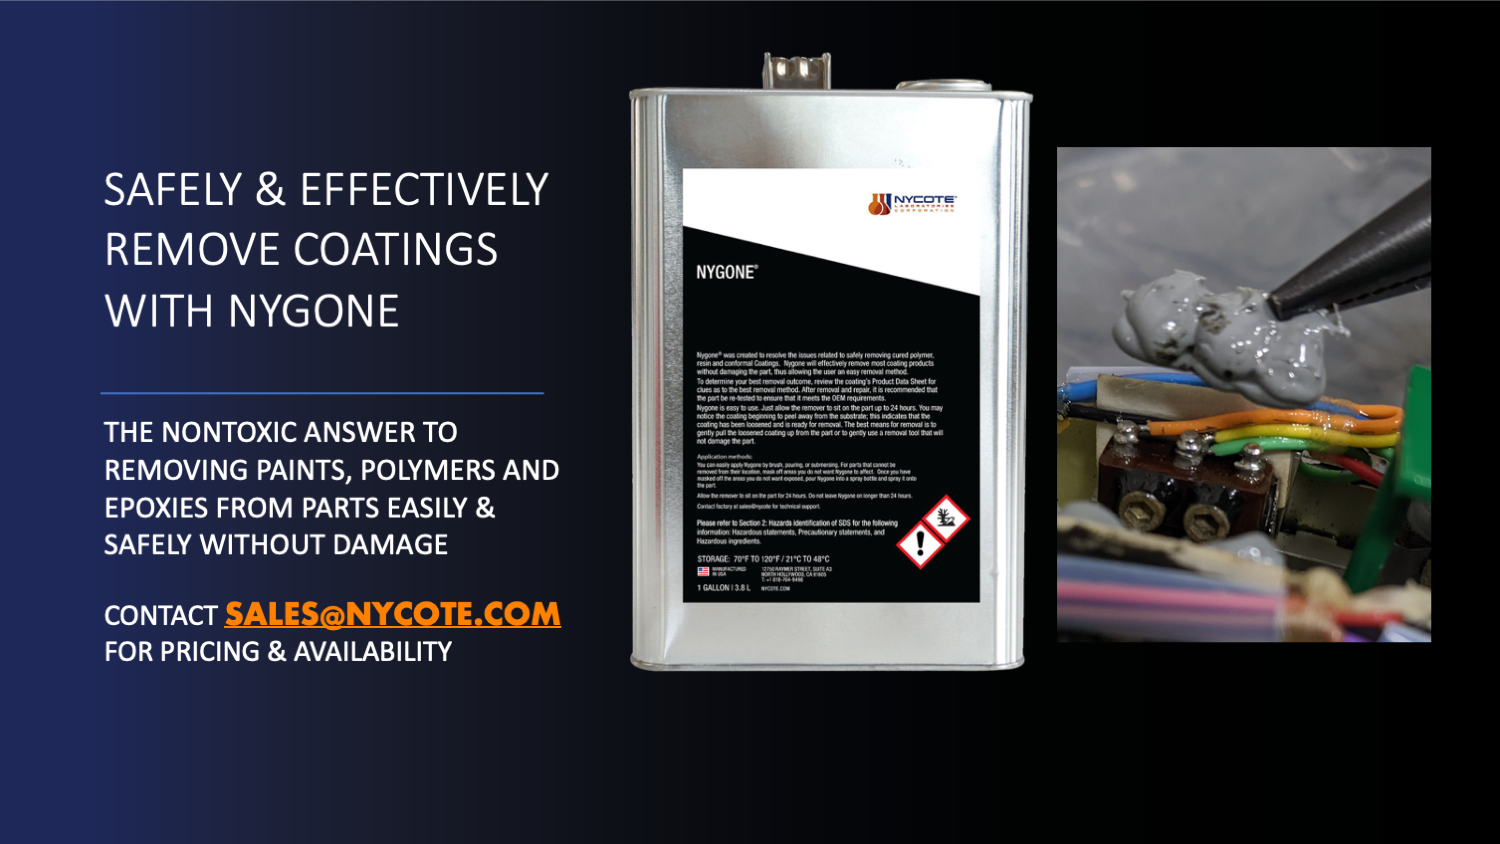 Nycote's new product Nygone is the safest and most effective way to remove coatings